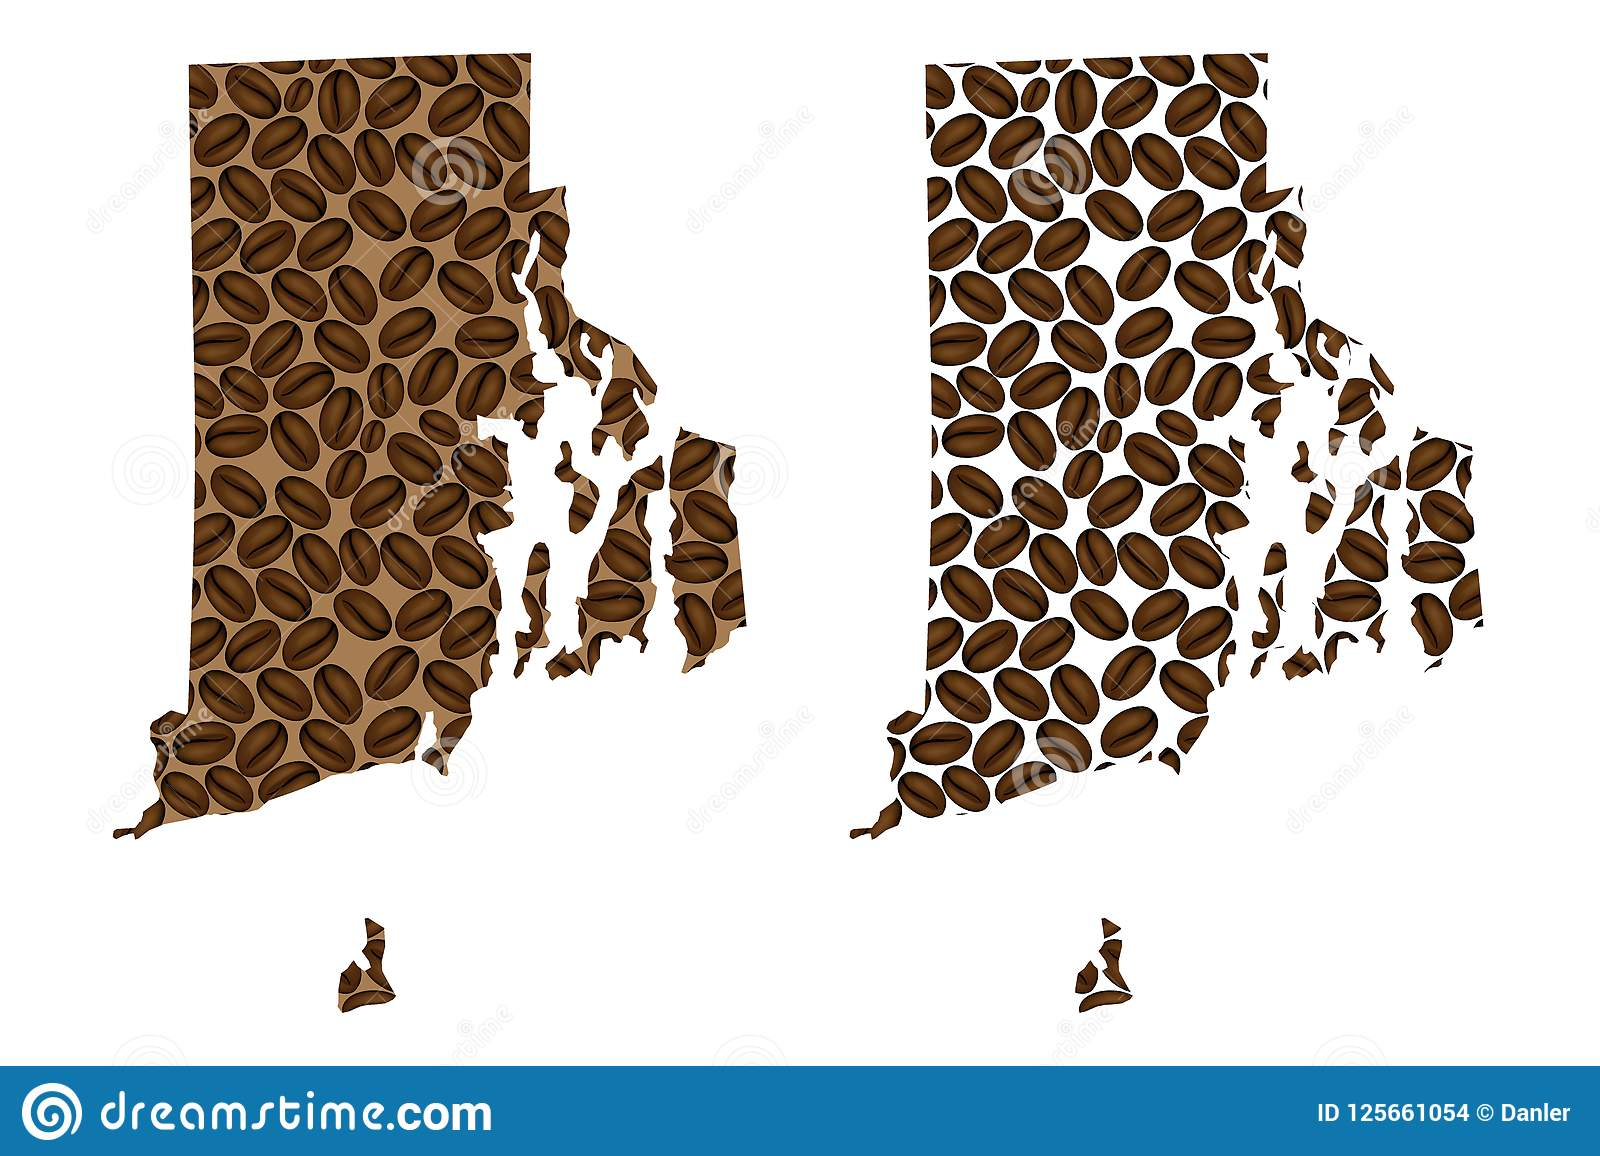 Rhode Island Map Of Coffee Bean Stock Vector